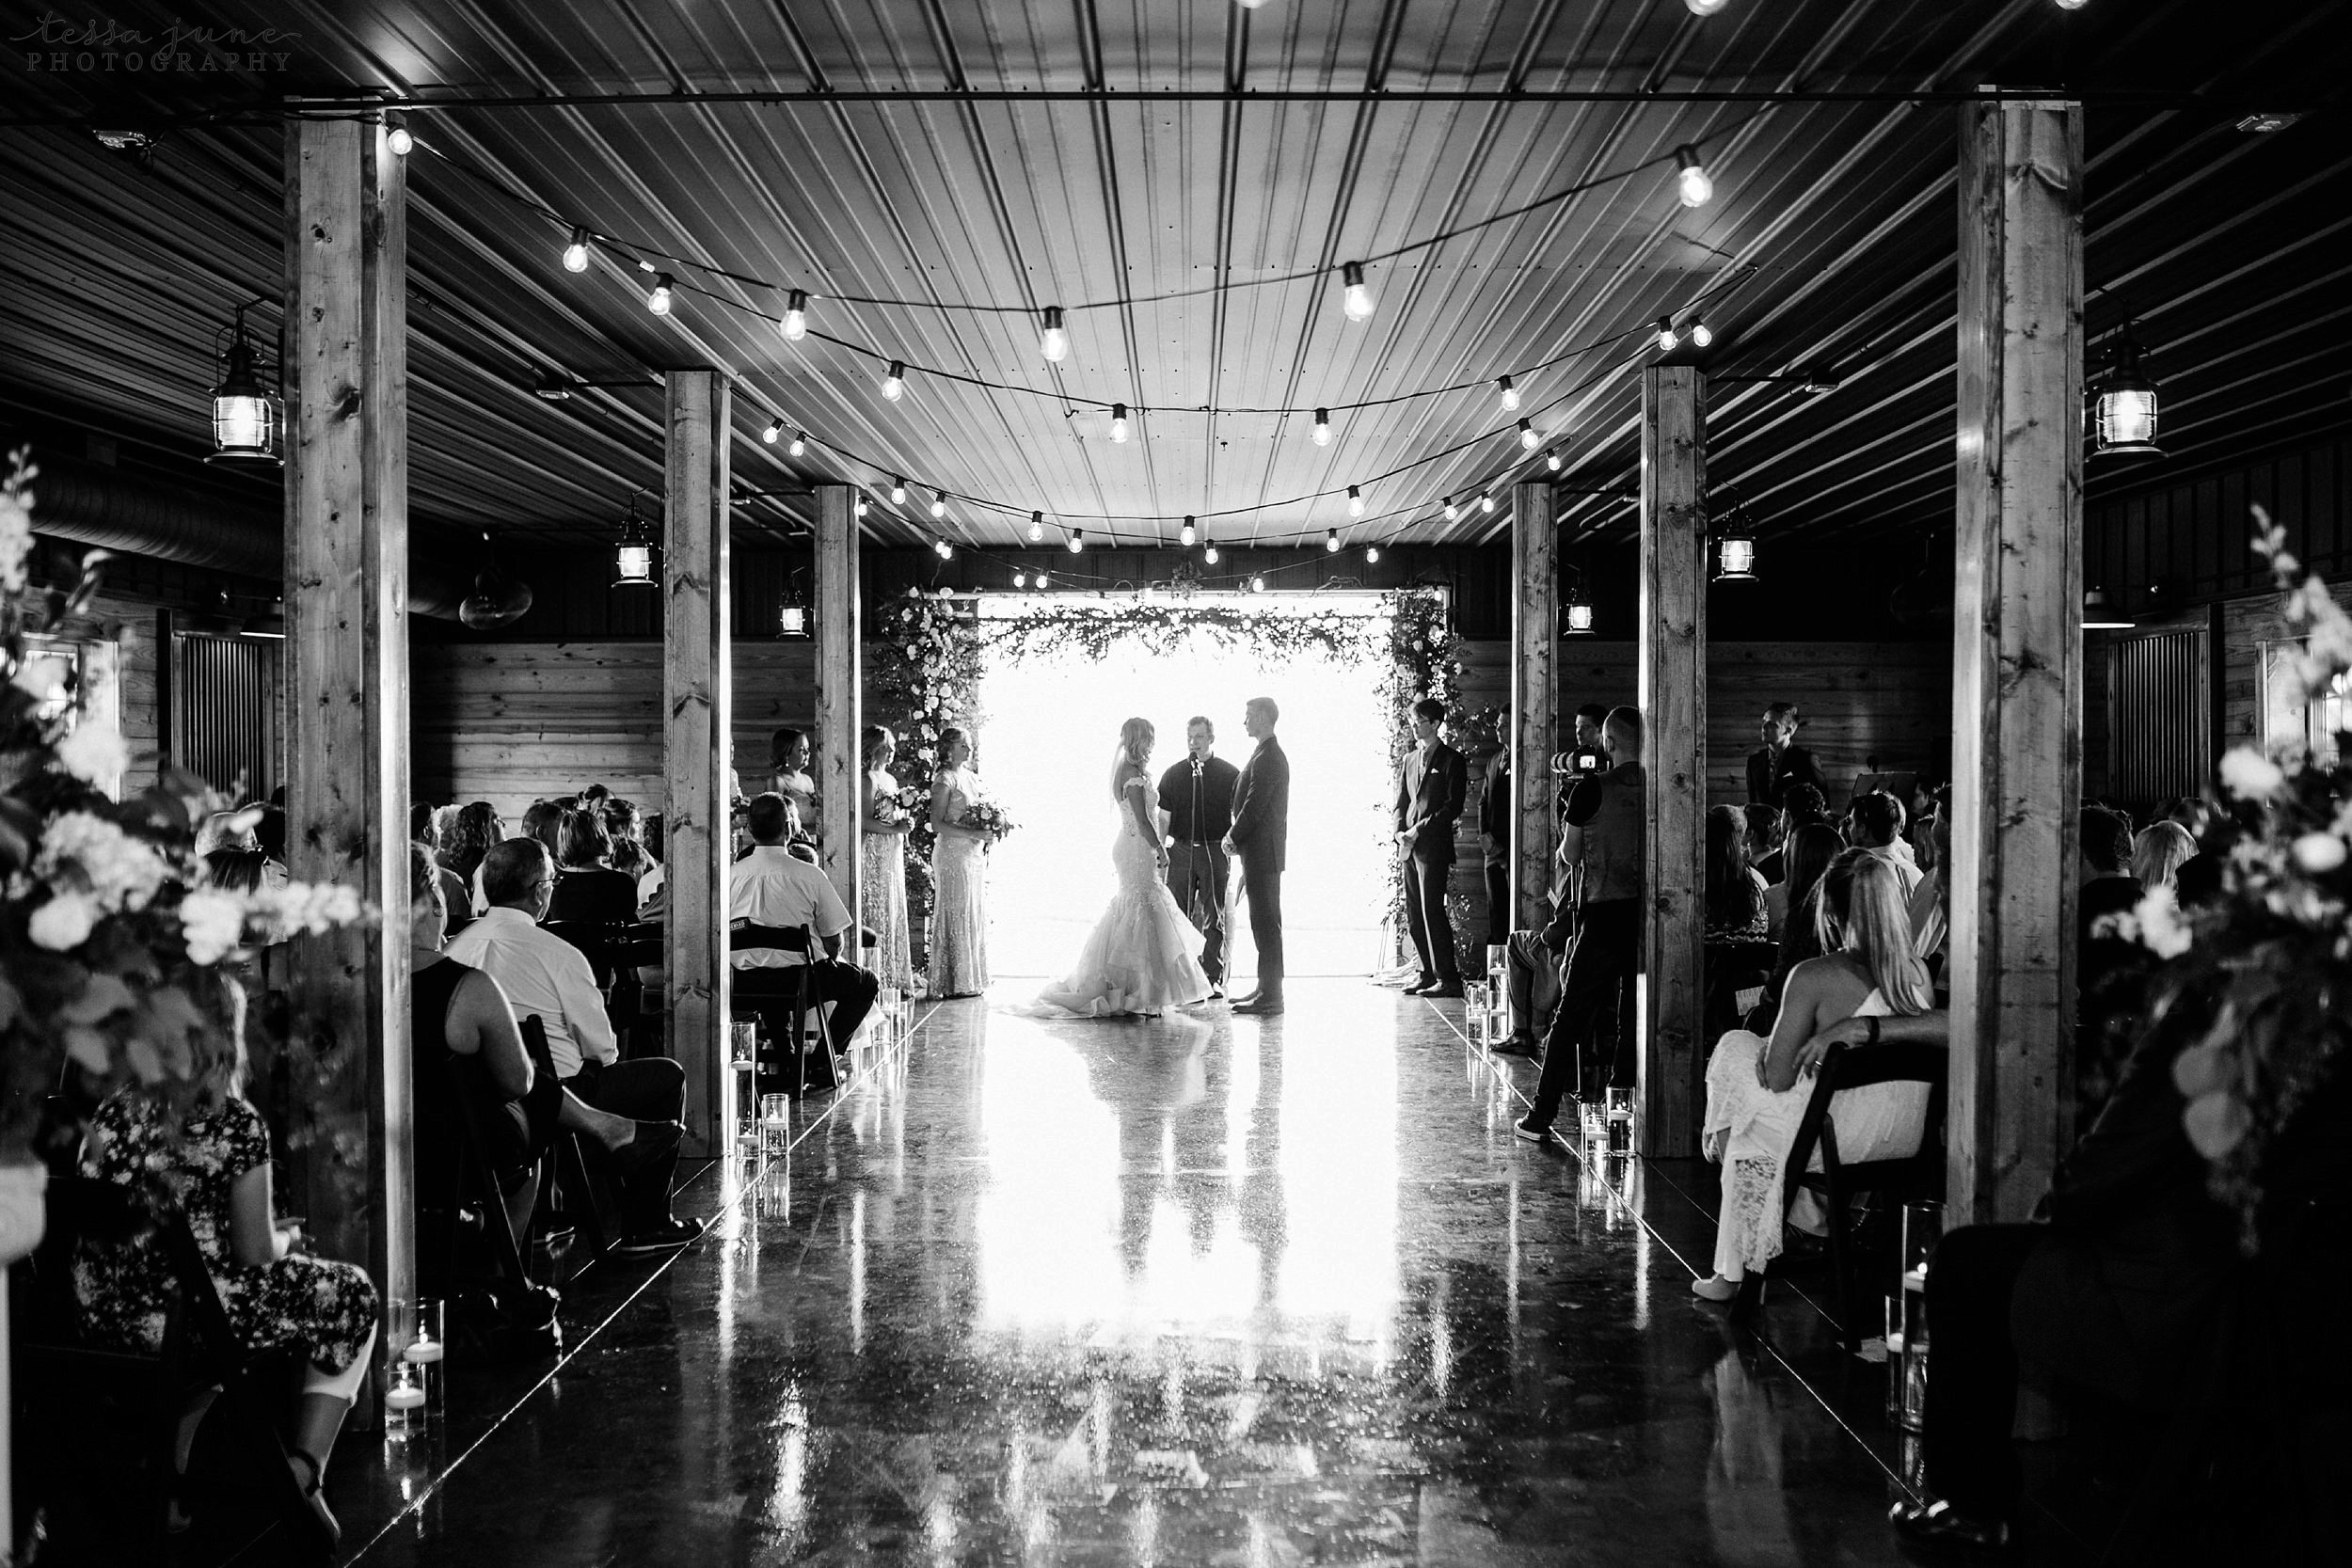 carlos-creek-winery-wedding-alexandria-minnesota-glam-elegant-floral-107.jpg